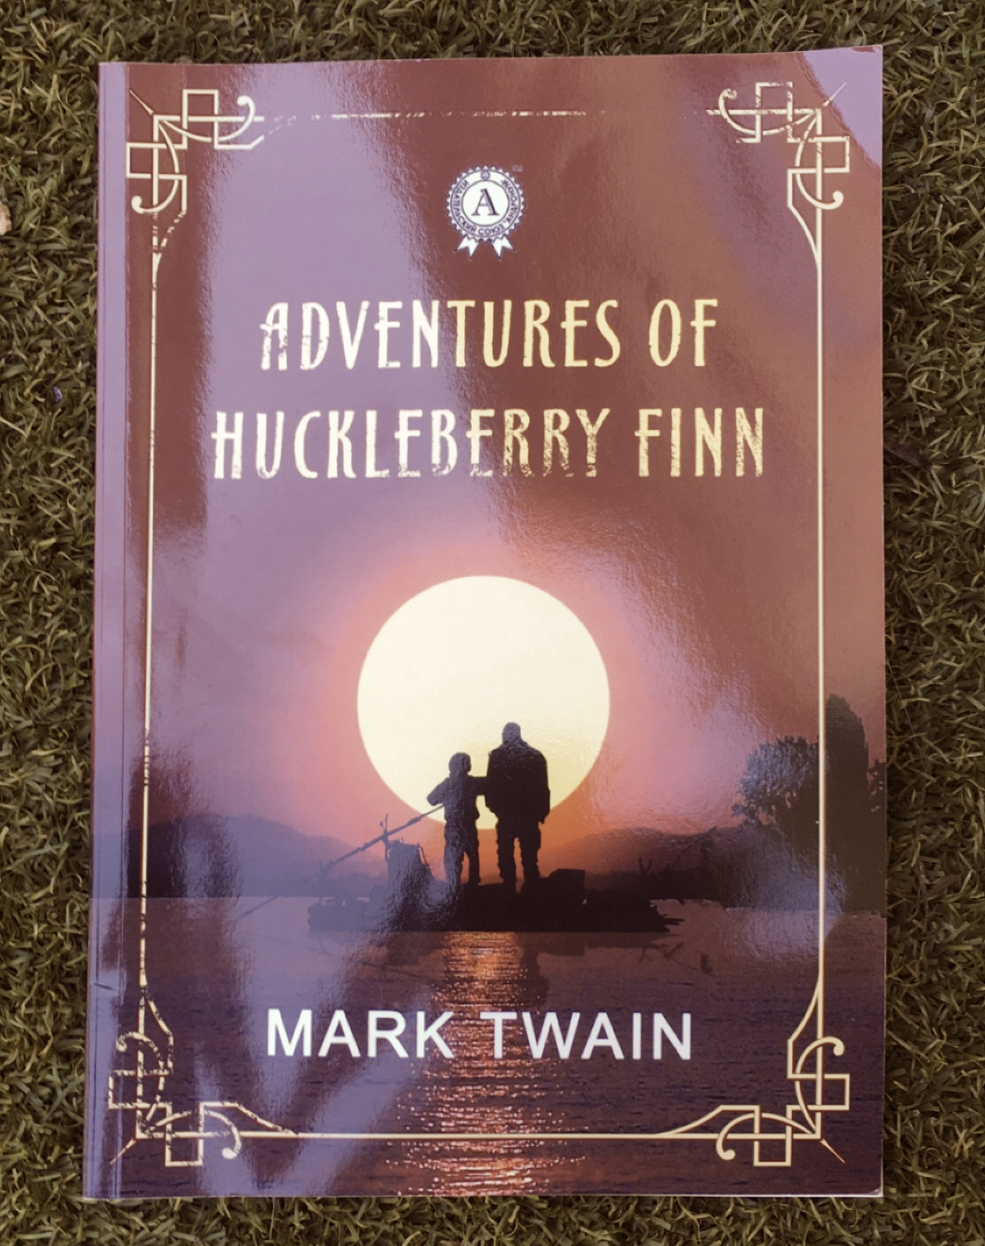 """Image of """"Adventures of Huckleberry Finn"""" book cover. Edited to have brown hues."""